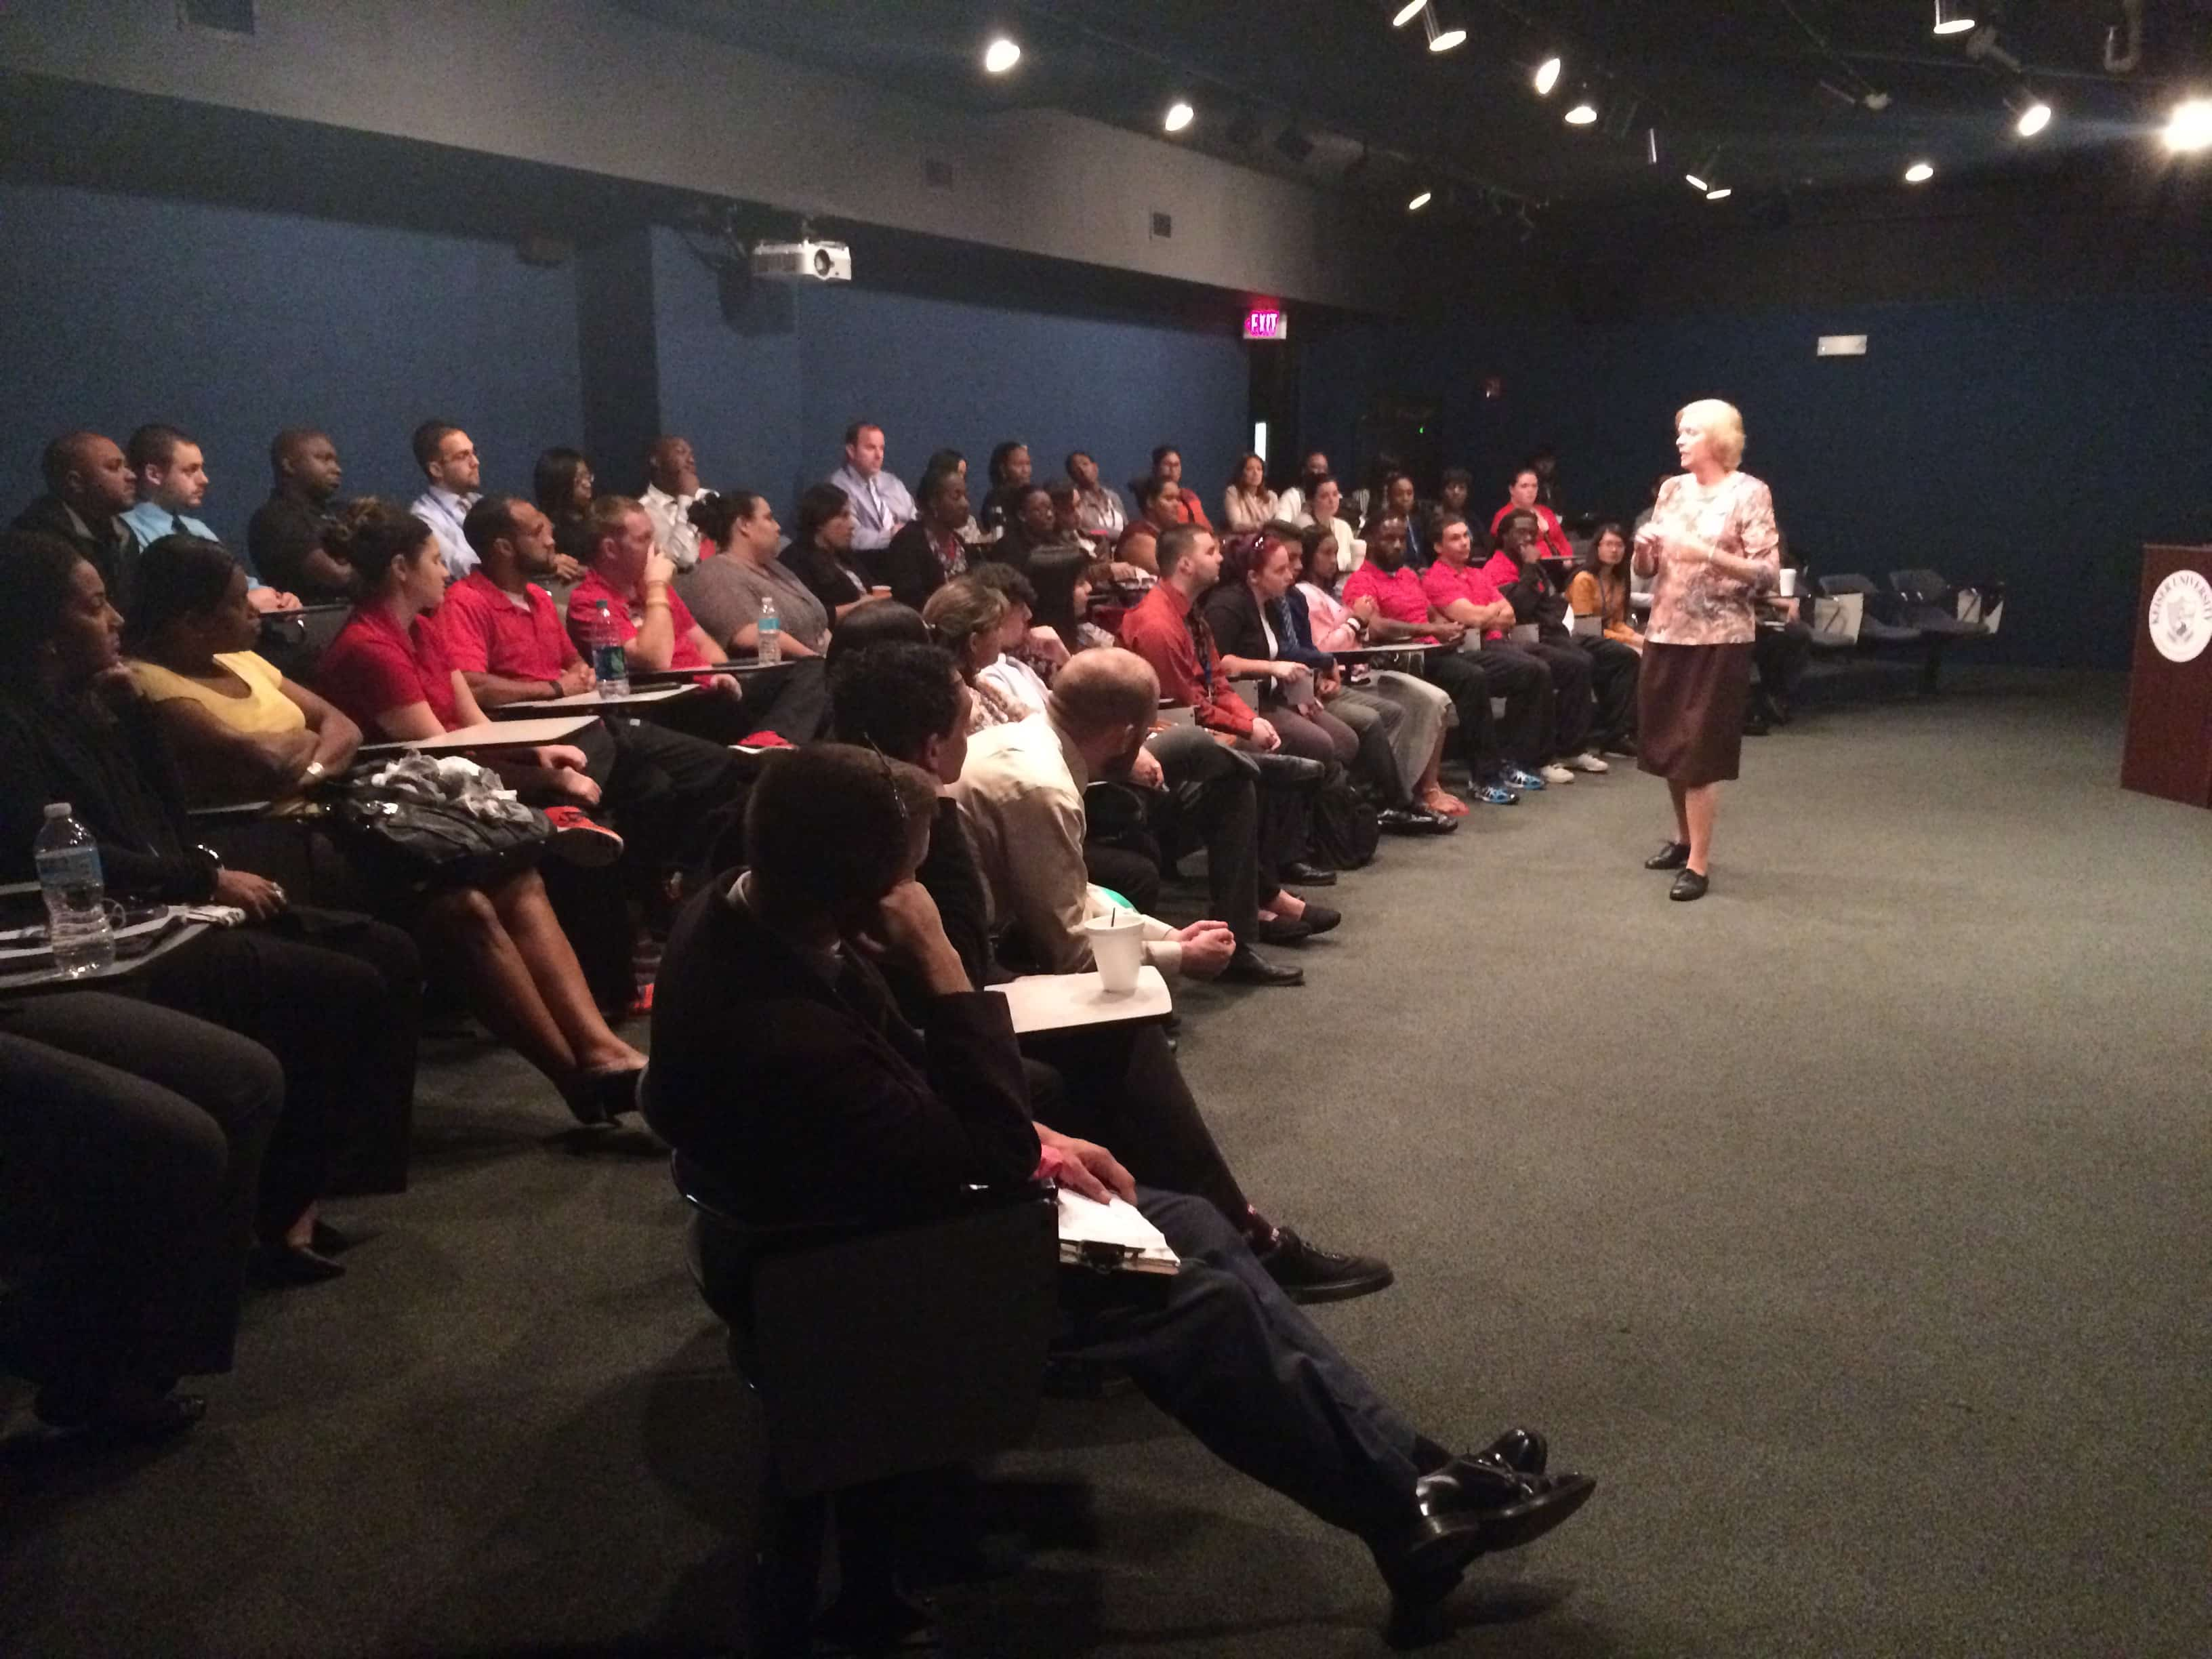 211 Broward Visits the Ft. Lauderdale Campus